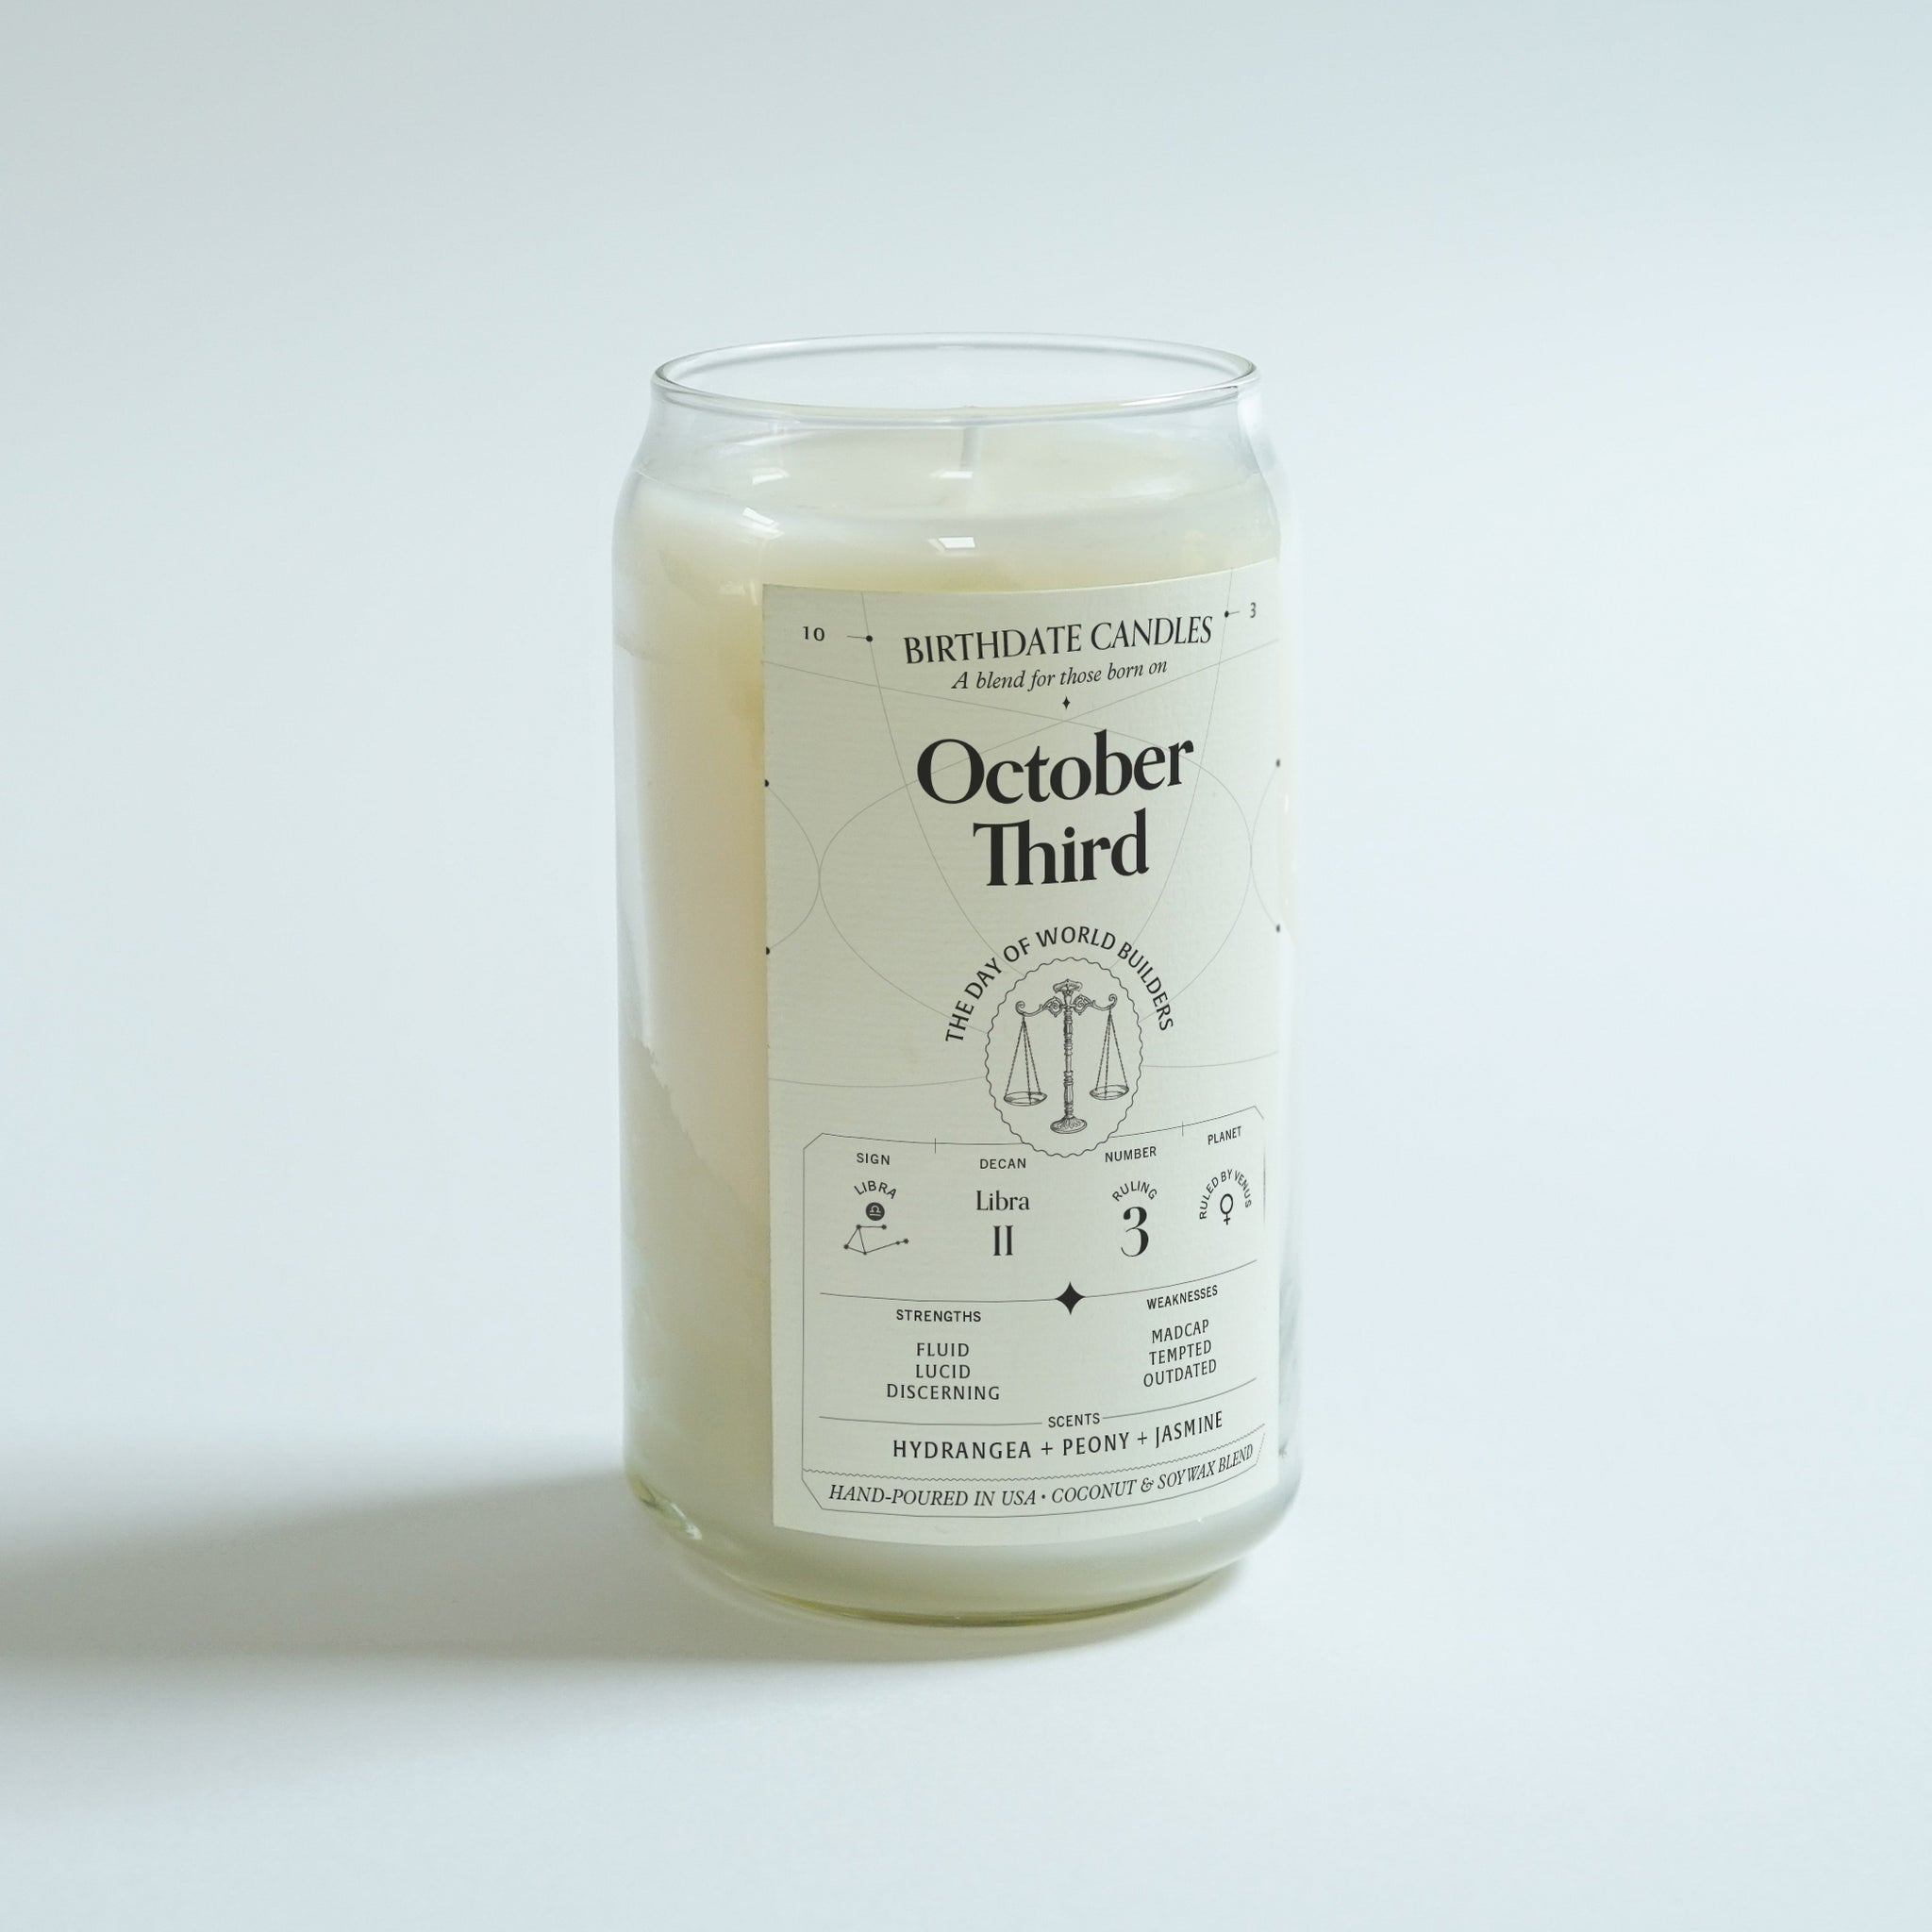 The October Third Birthday Candle